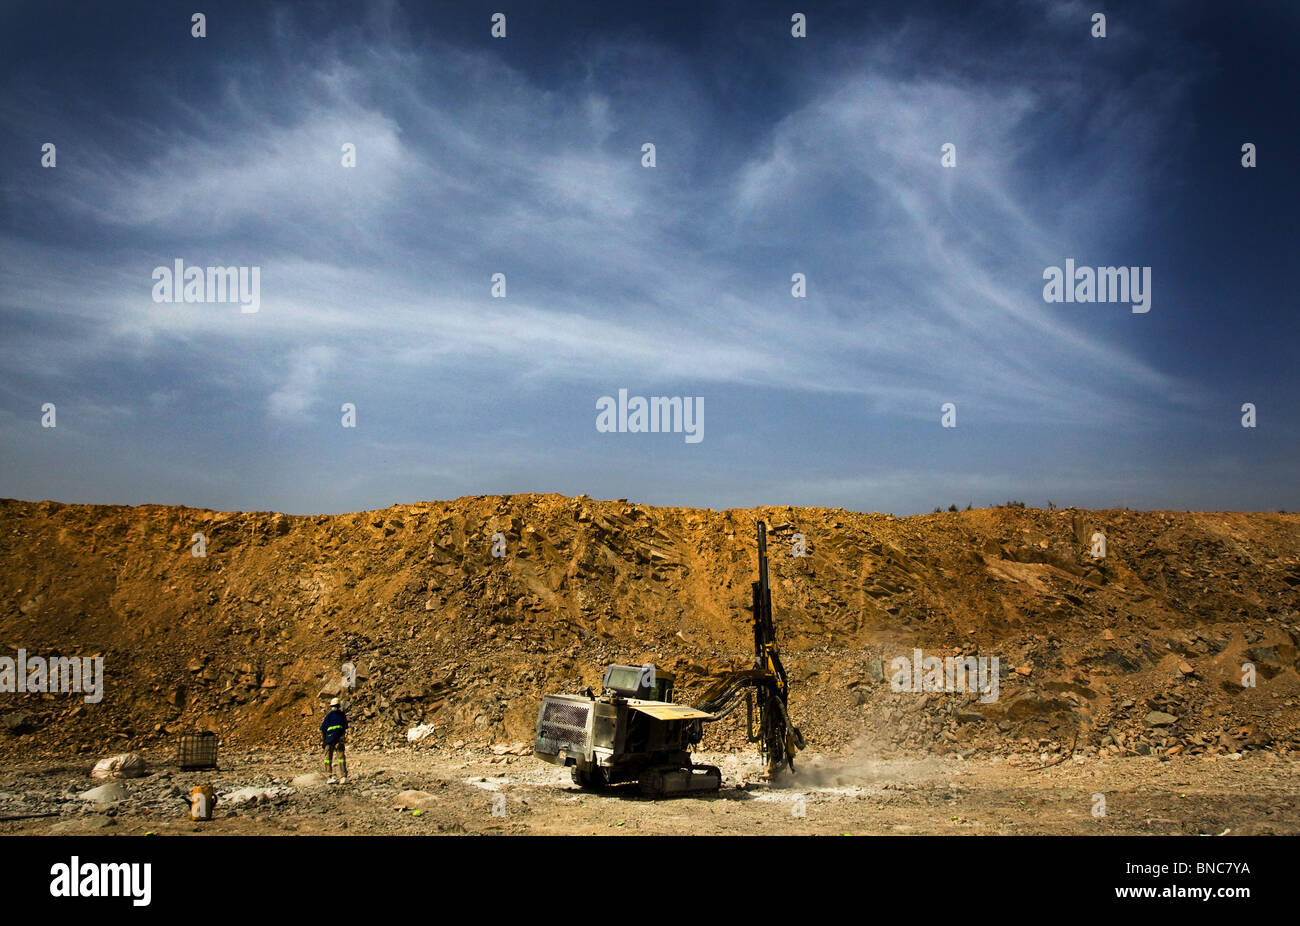 A worker watches over a mining drill in the main pit of the Youga gold mine - Stock Image